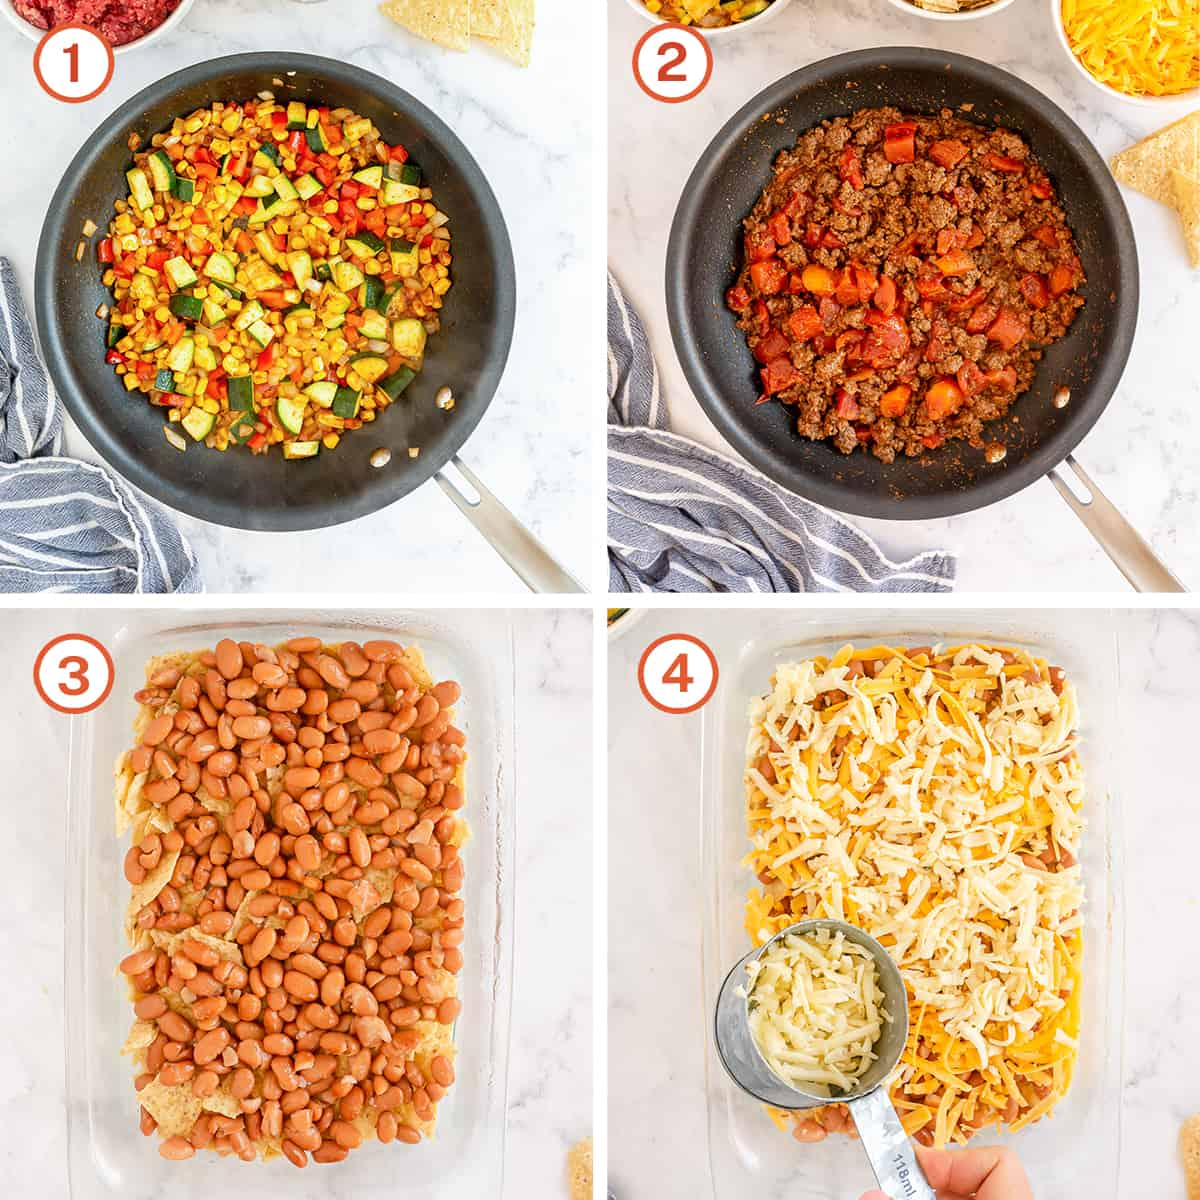 Vegetables and beef cooking in a skillet and ingredients layered in a casserole dish.